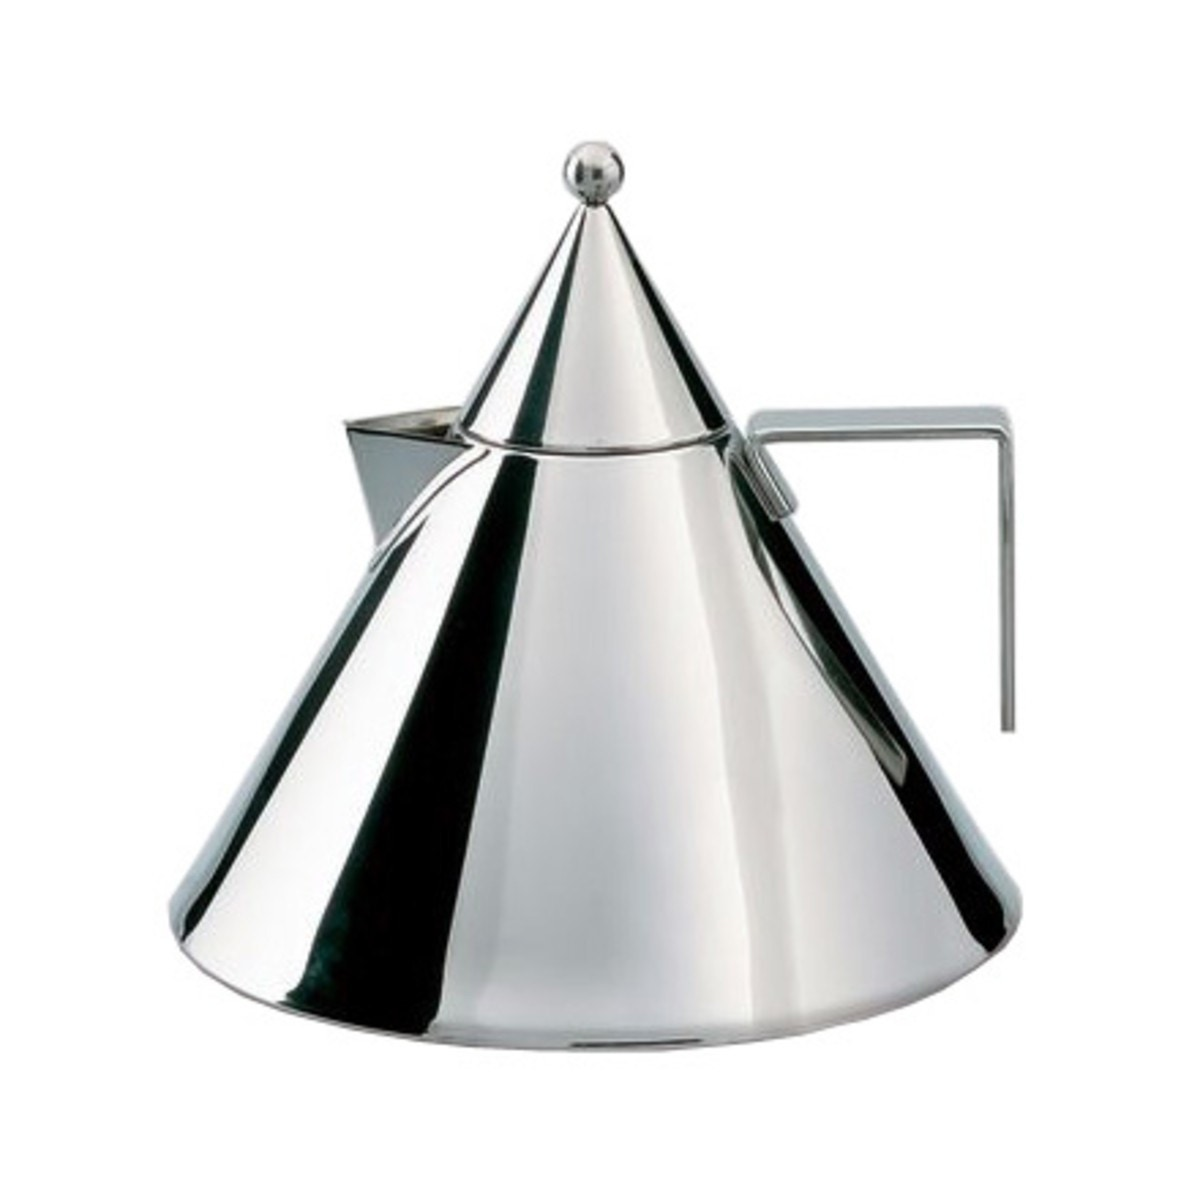 alessi il conico kettle  gr shop canada - alessi il conico kettle